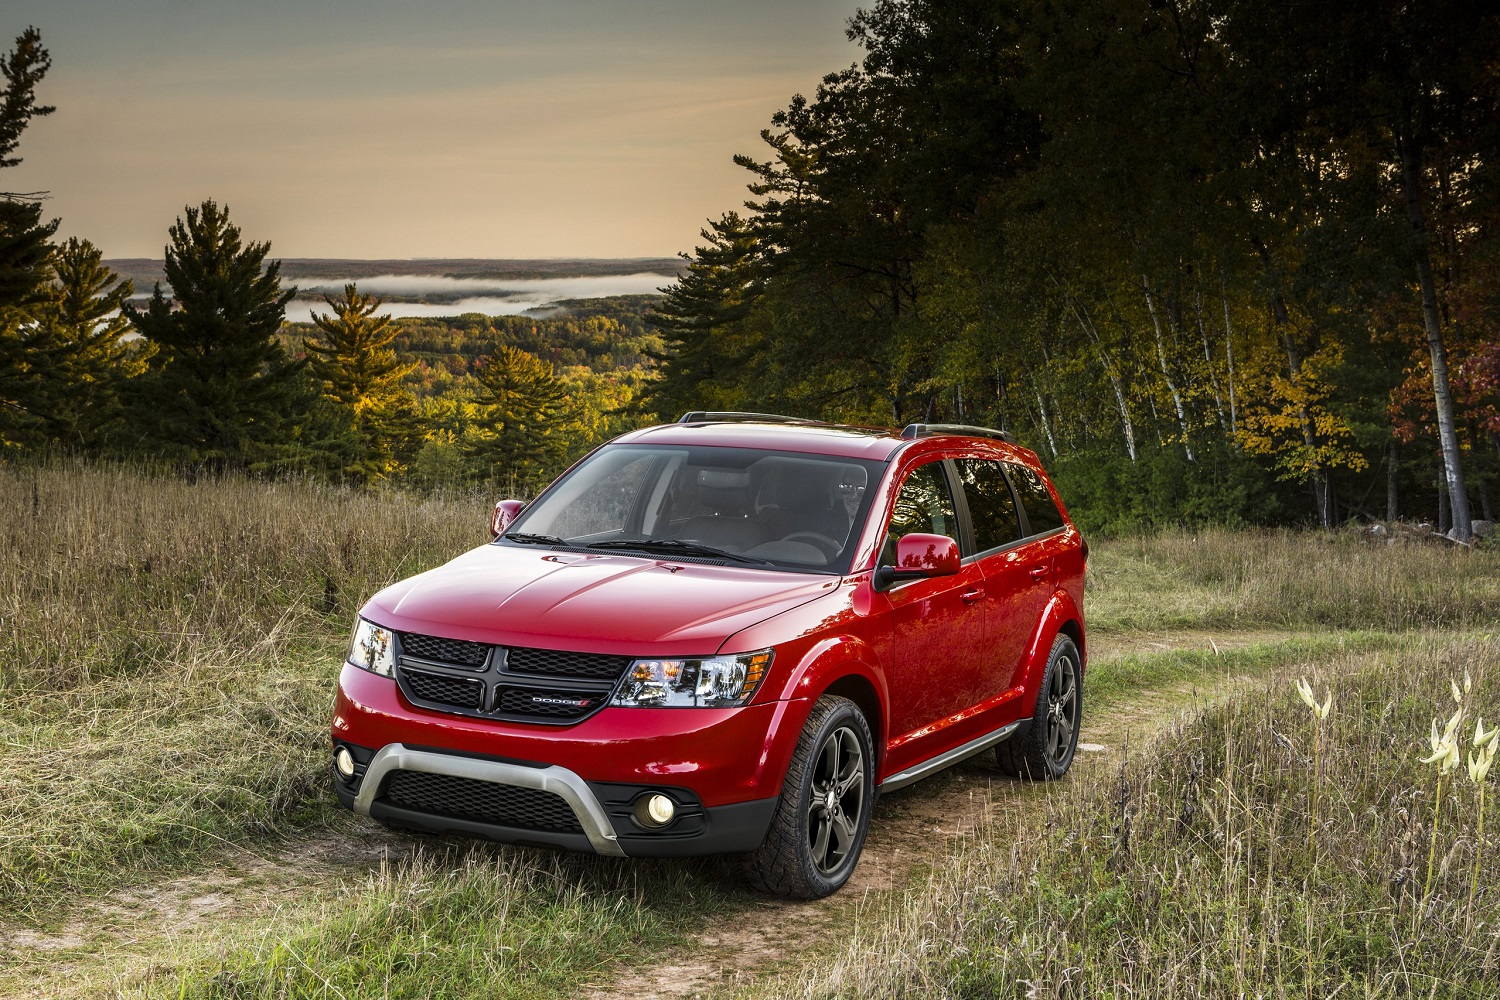 The next Dodge Journey could have Italian citizenship